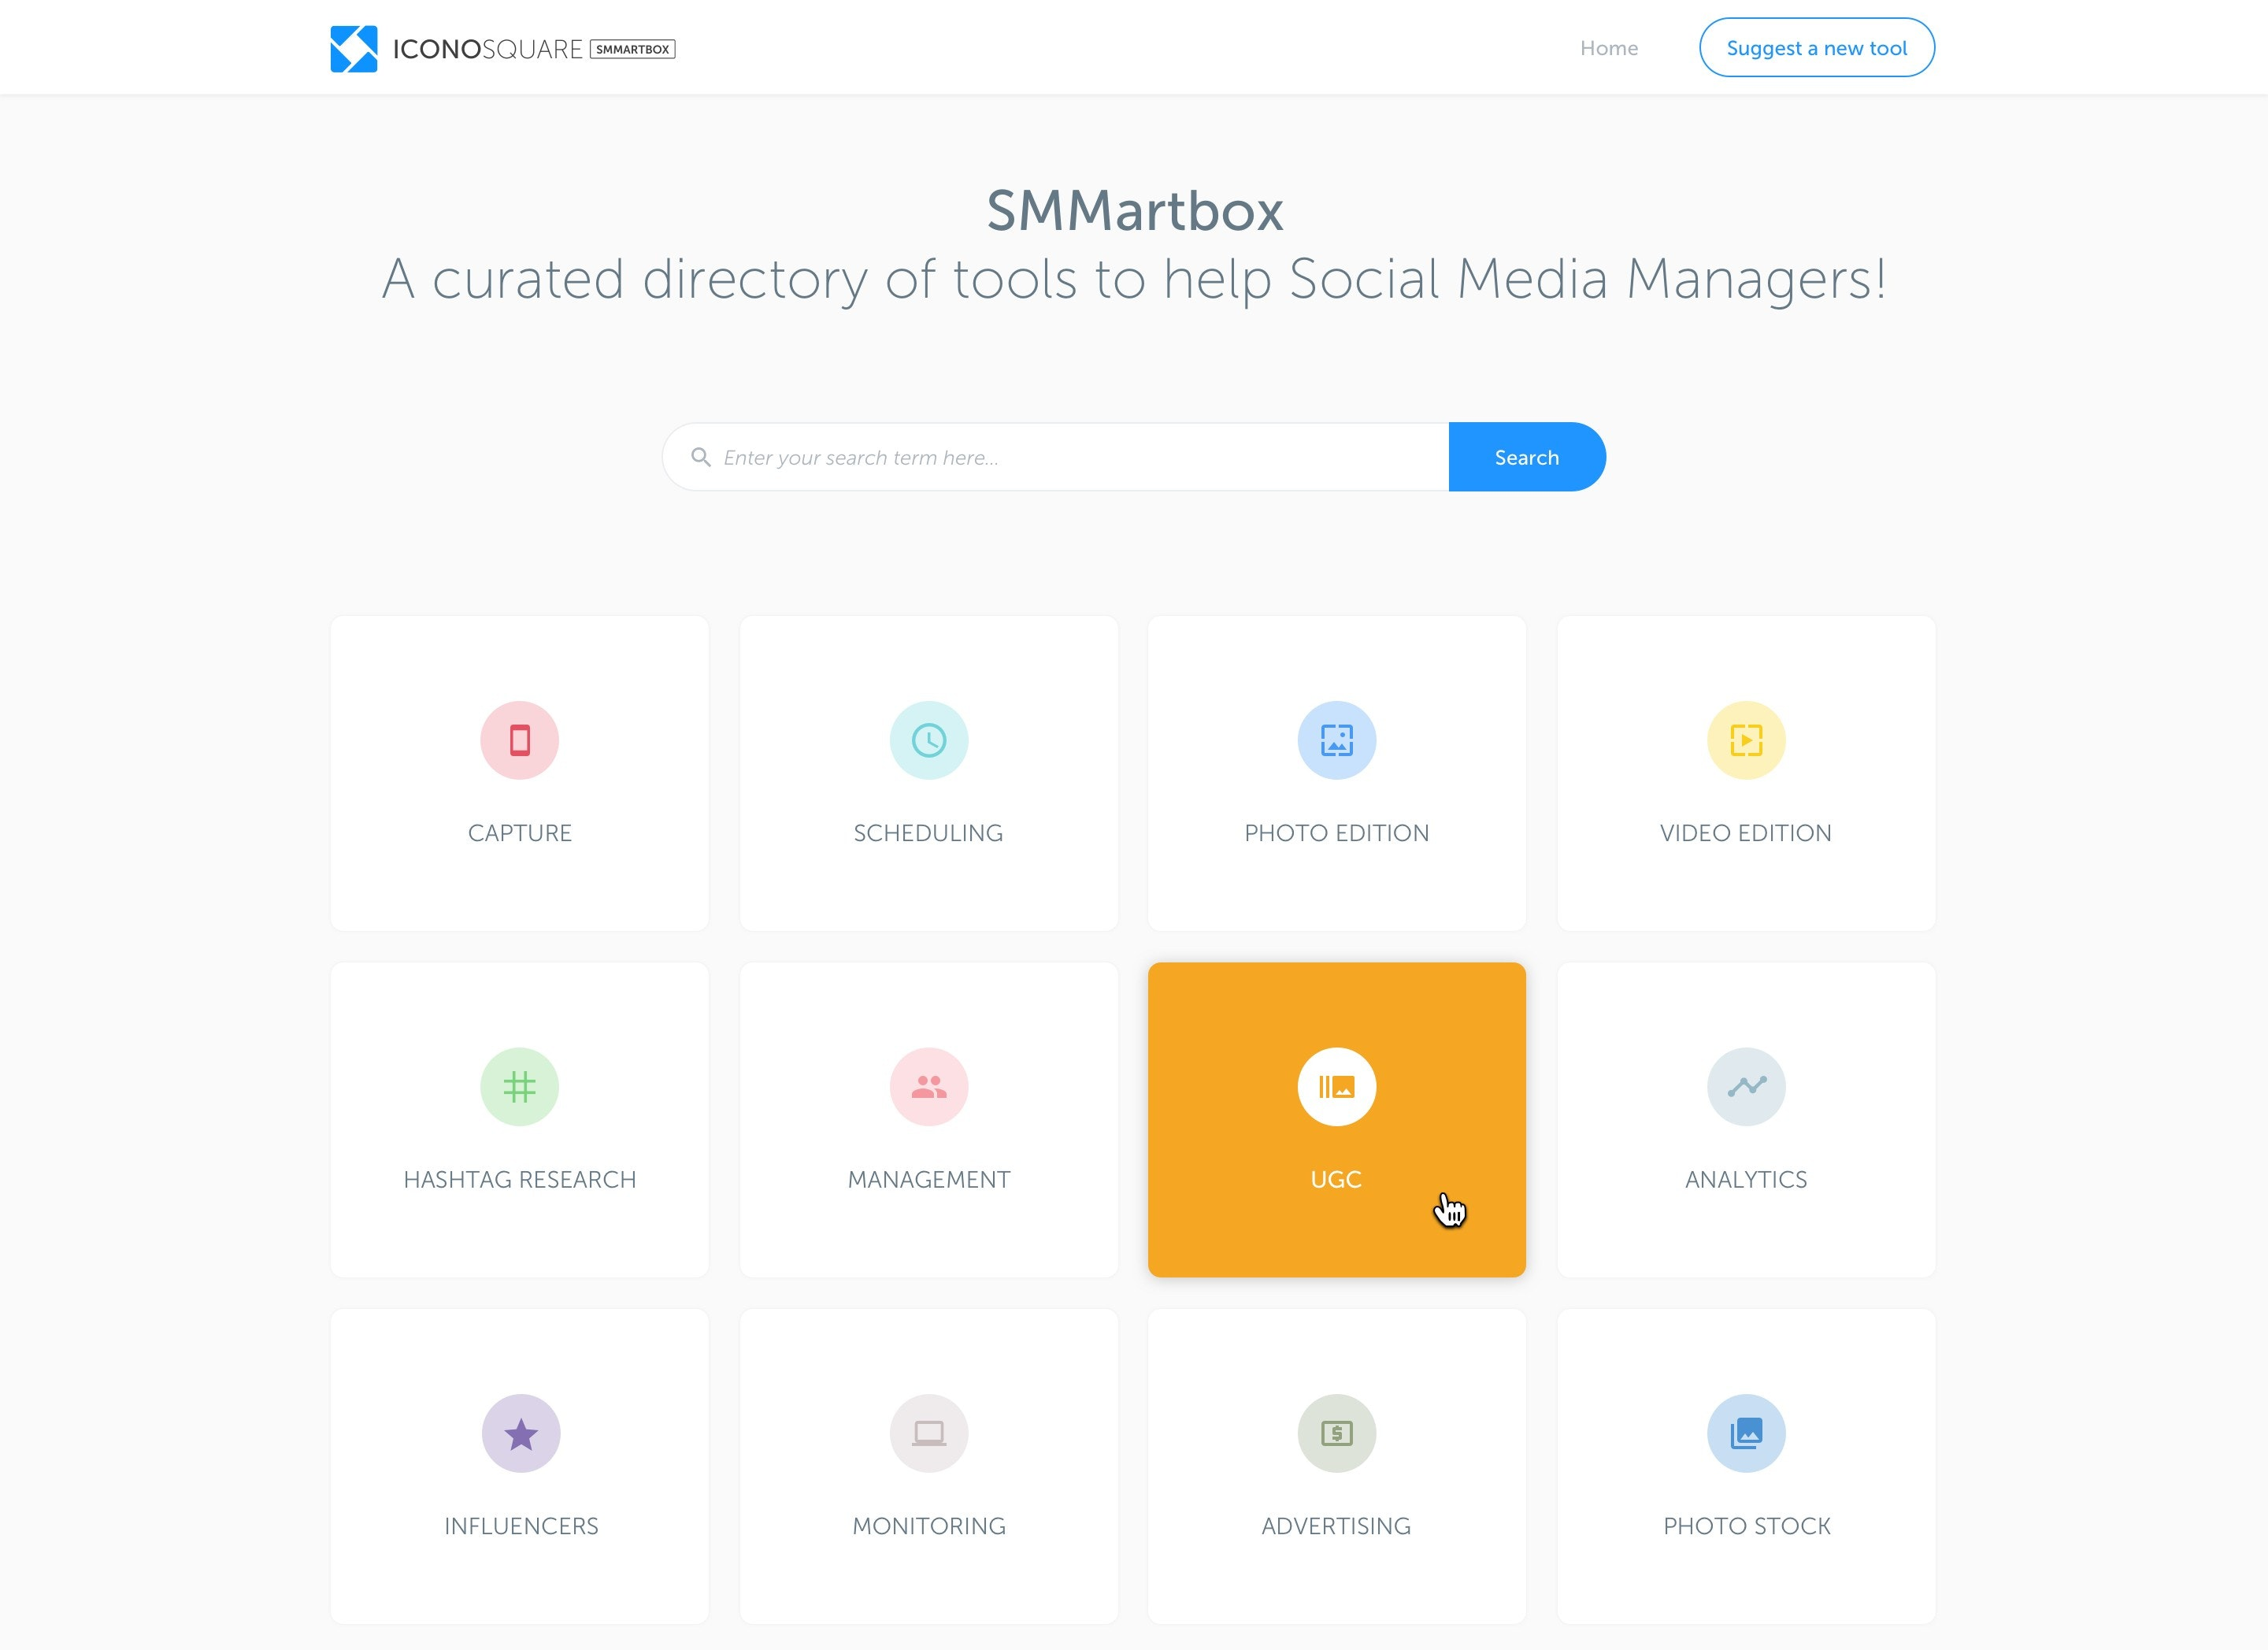 SMMartbox by Iconosquare